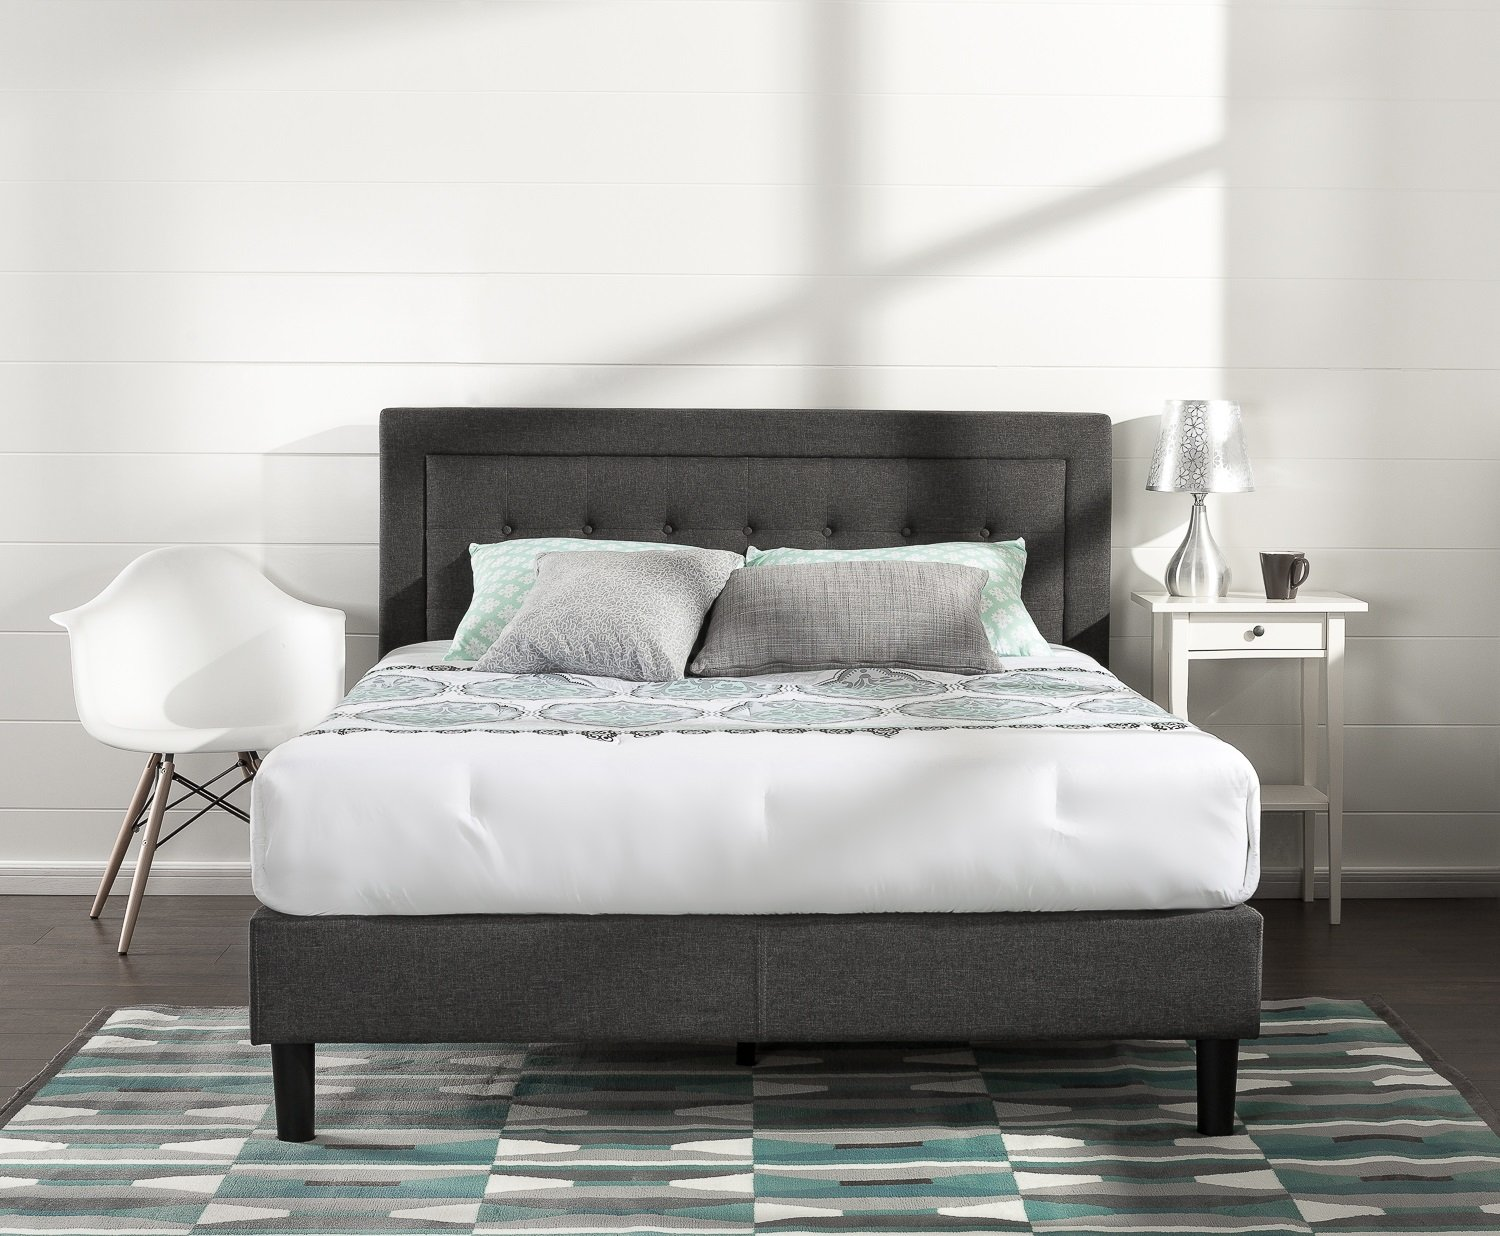 Best Rated in Bedroom Furniture & Helpful Customer Reviews - Amazon.com